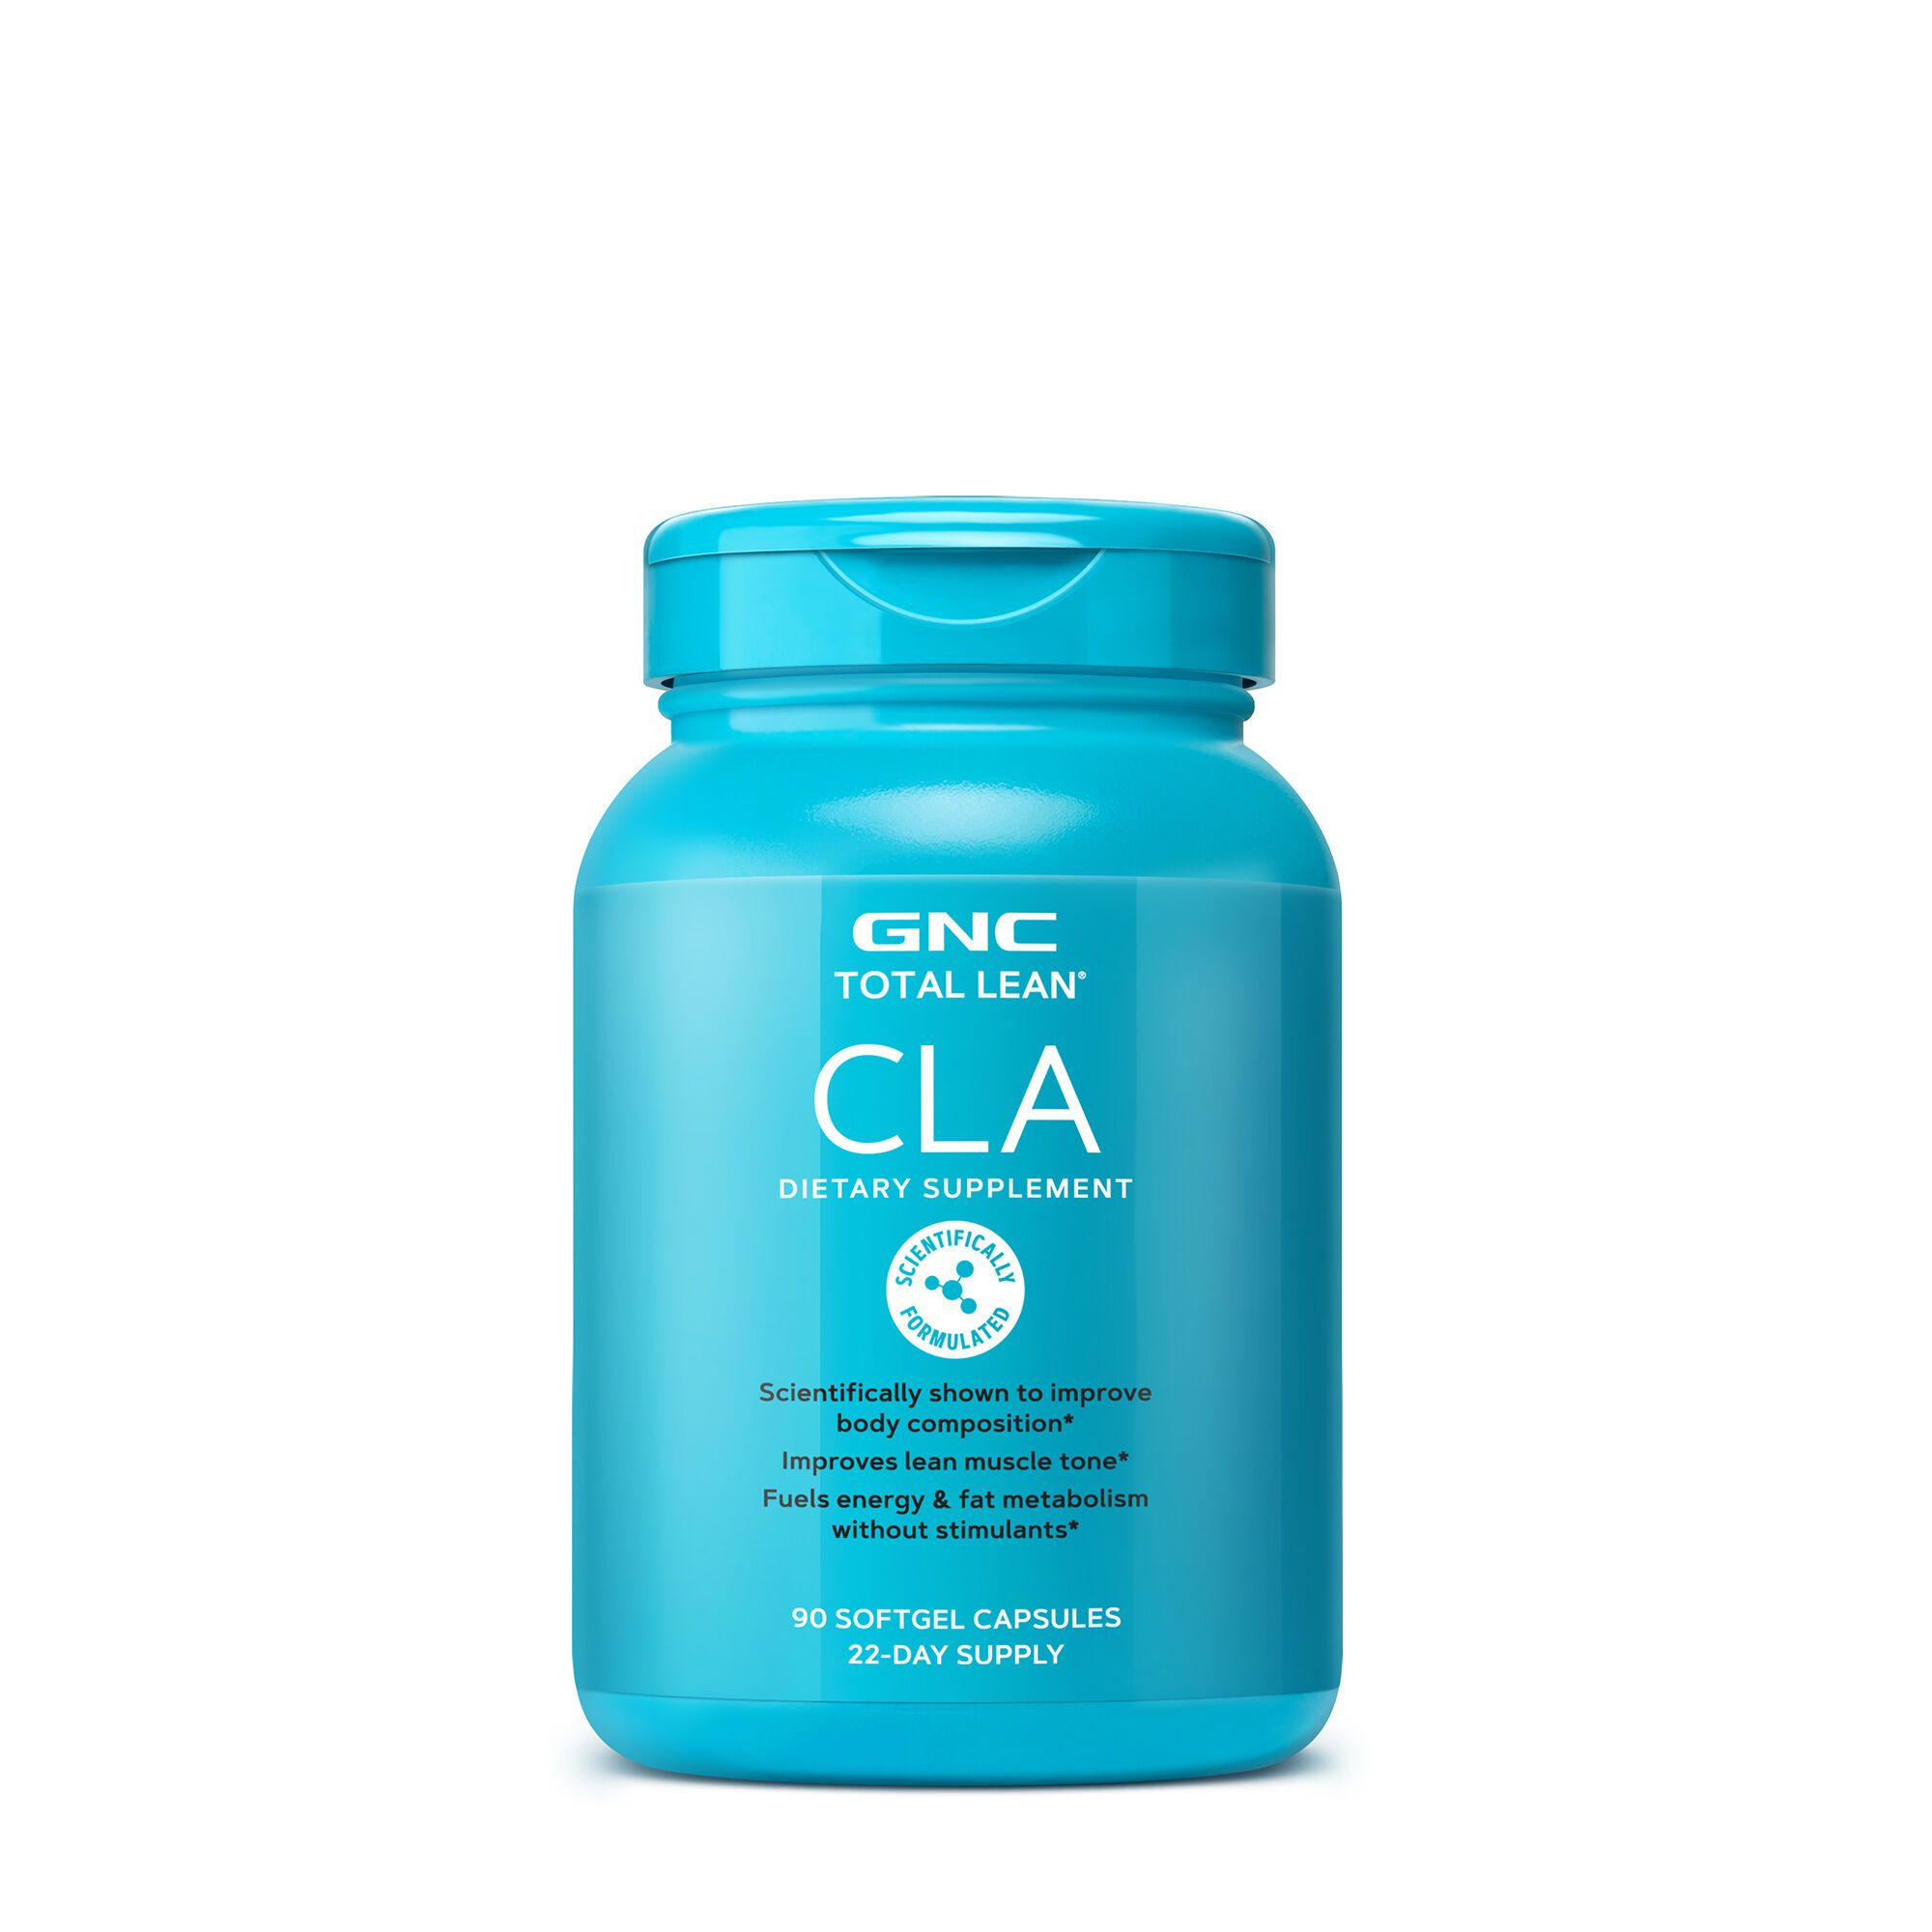 Pin by Danielle Turner on Products in 2020 Gnc total